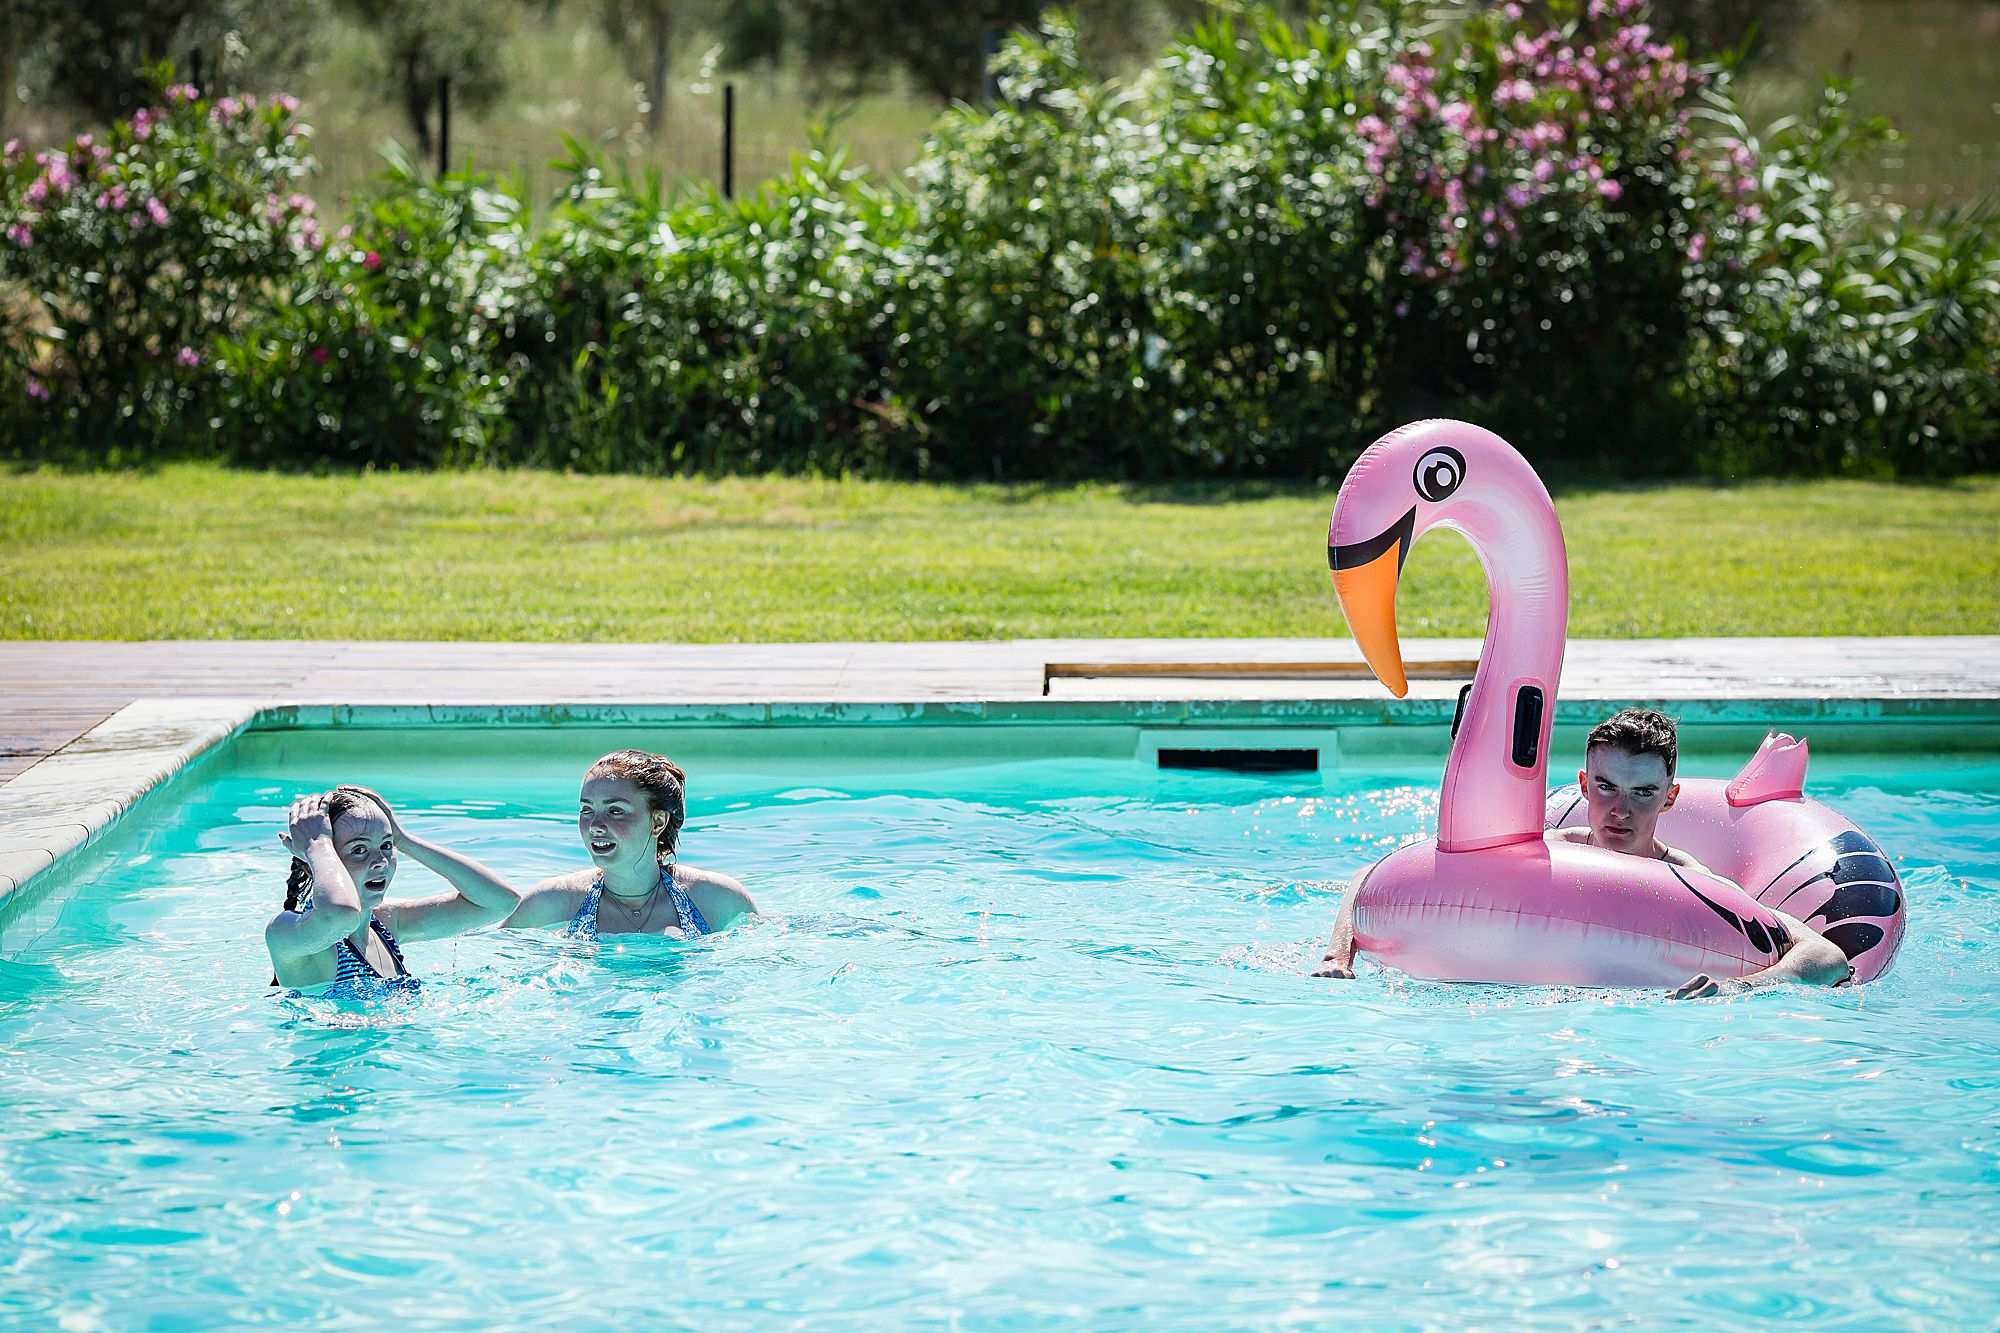 Domaine de la Grangette wedding pool party